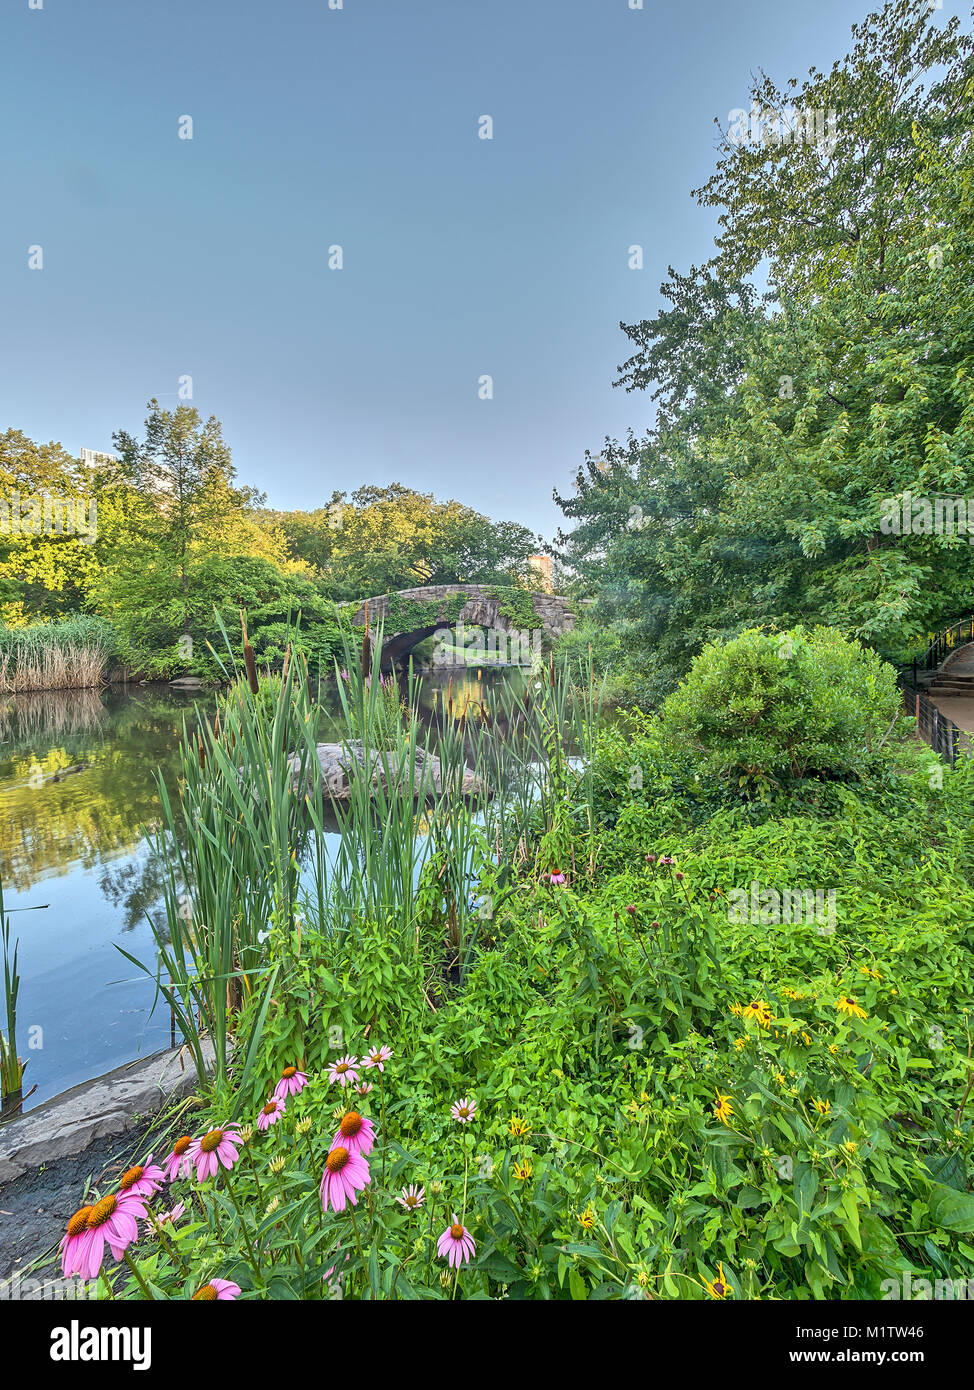 Gapstow Bridge is one of the icons of Central Park, Manhattan in New York City - Stock Image